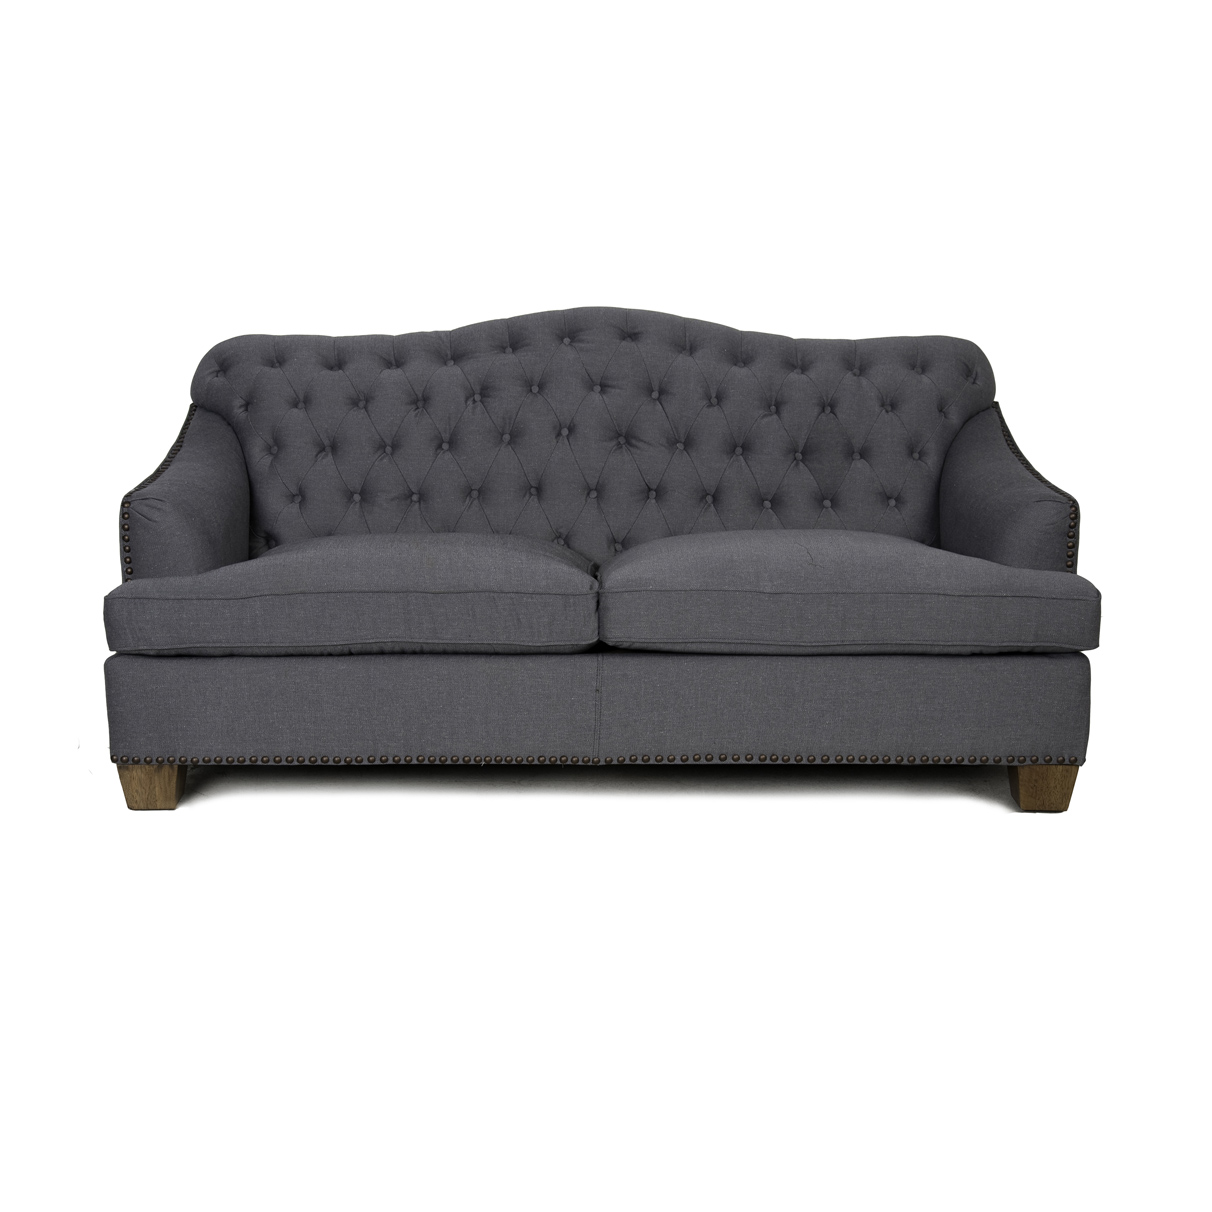 Bardot tufted sofa with nailheads charcoal zin home for Charcoal sofa